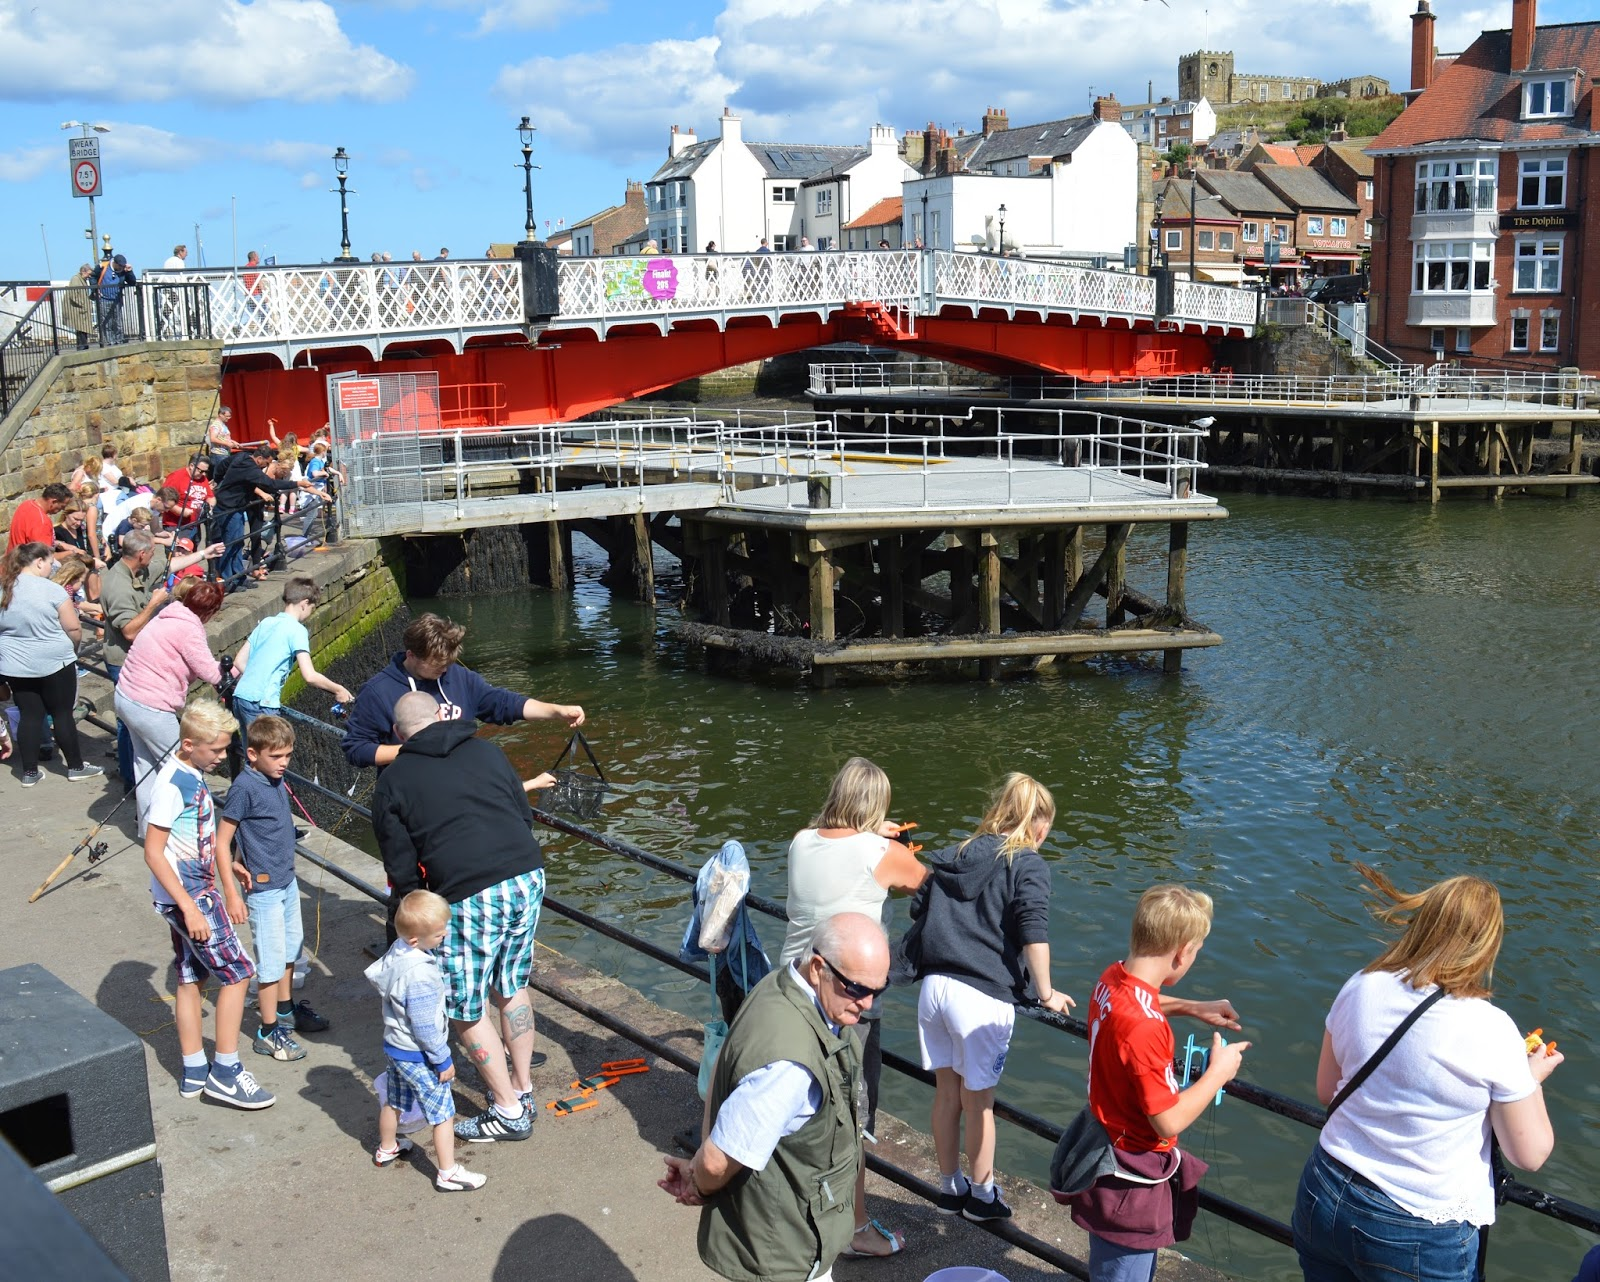 6 Day Trips to take with your Kids this Summer (that are less than 2 hours drive from Newcastle) | Whitby Day Trip (Whitby Harbour)